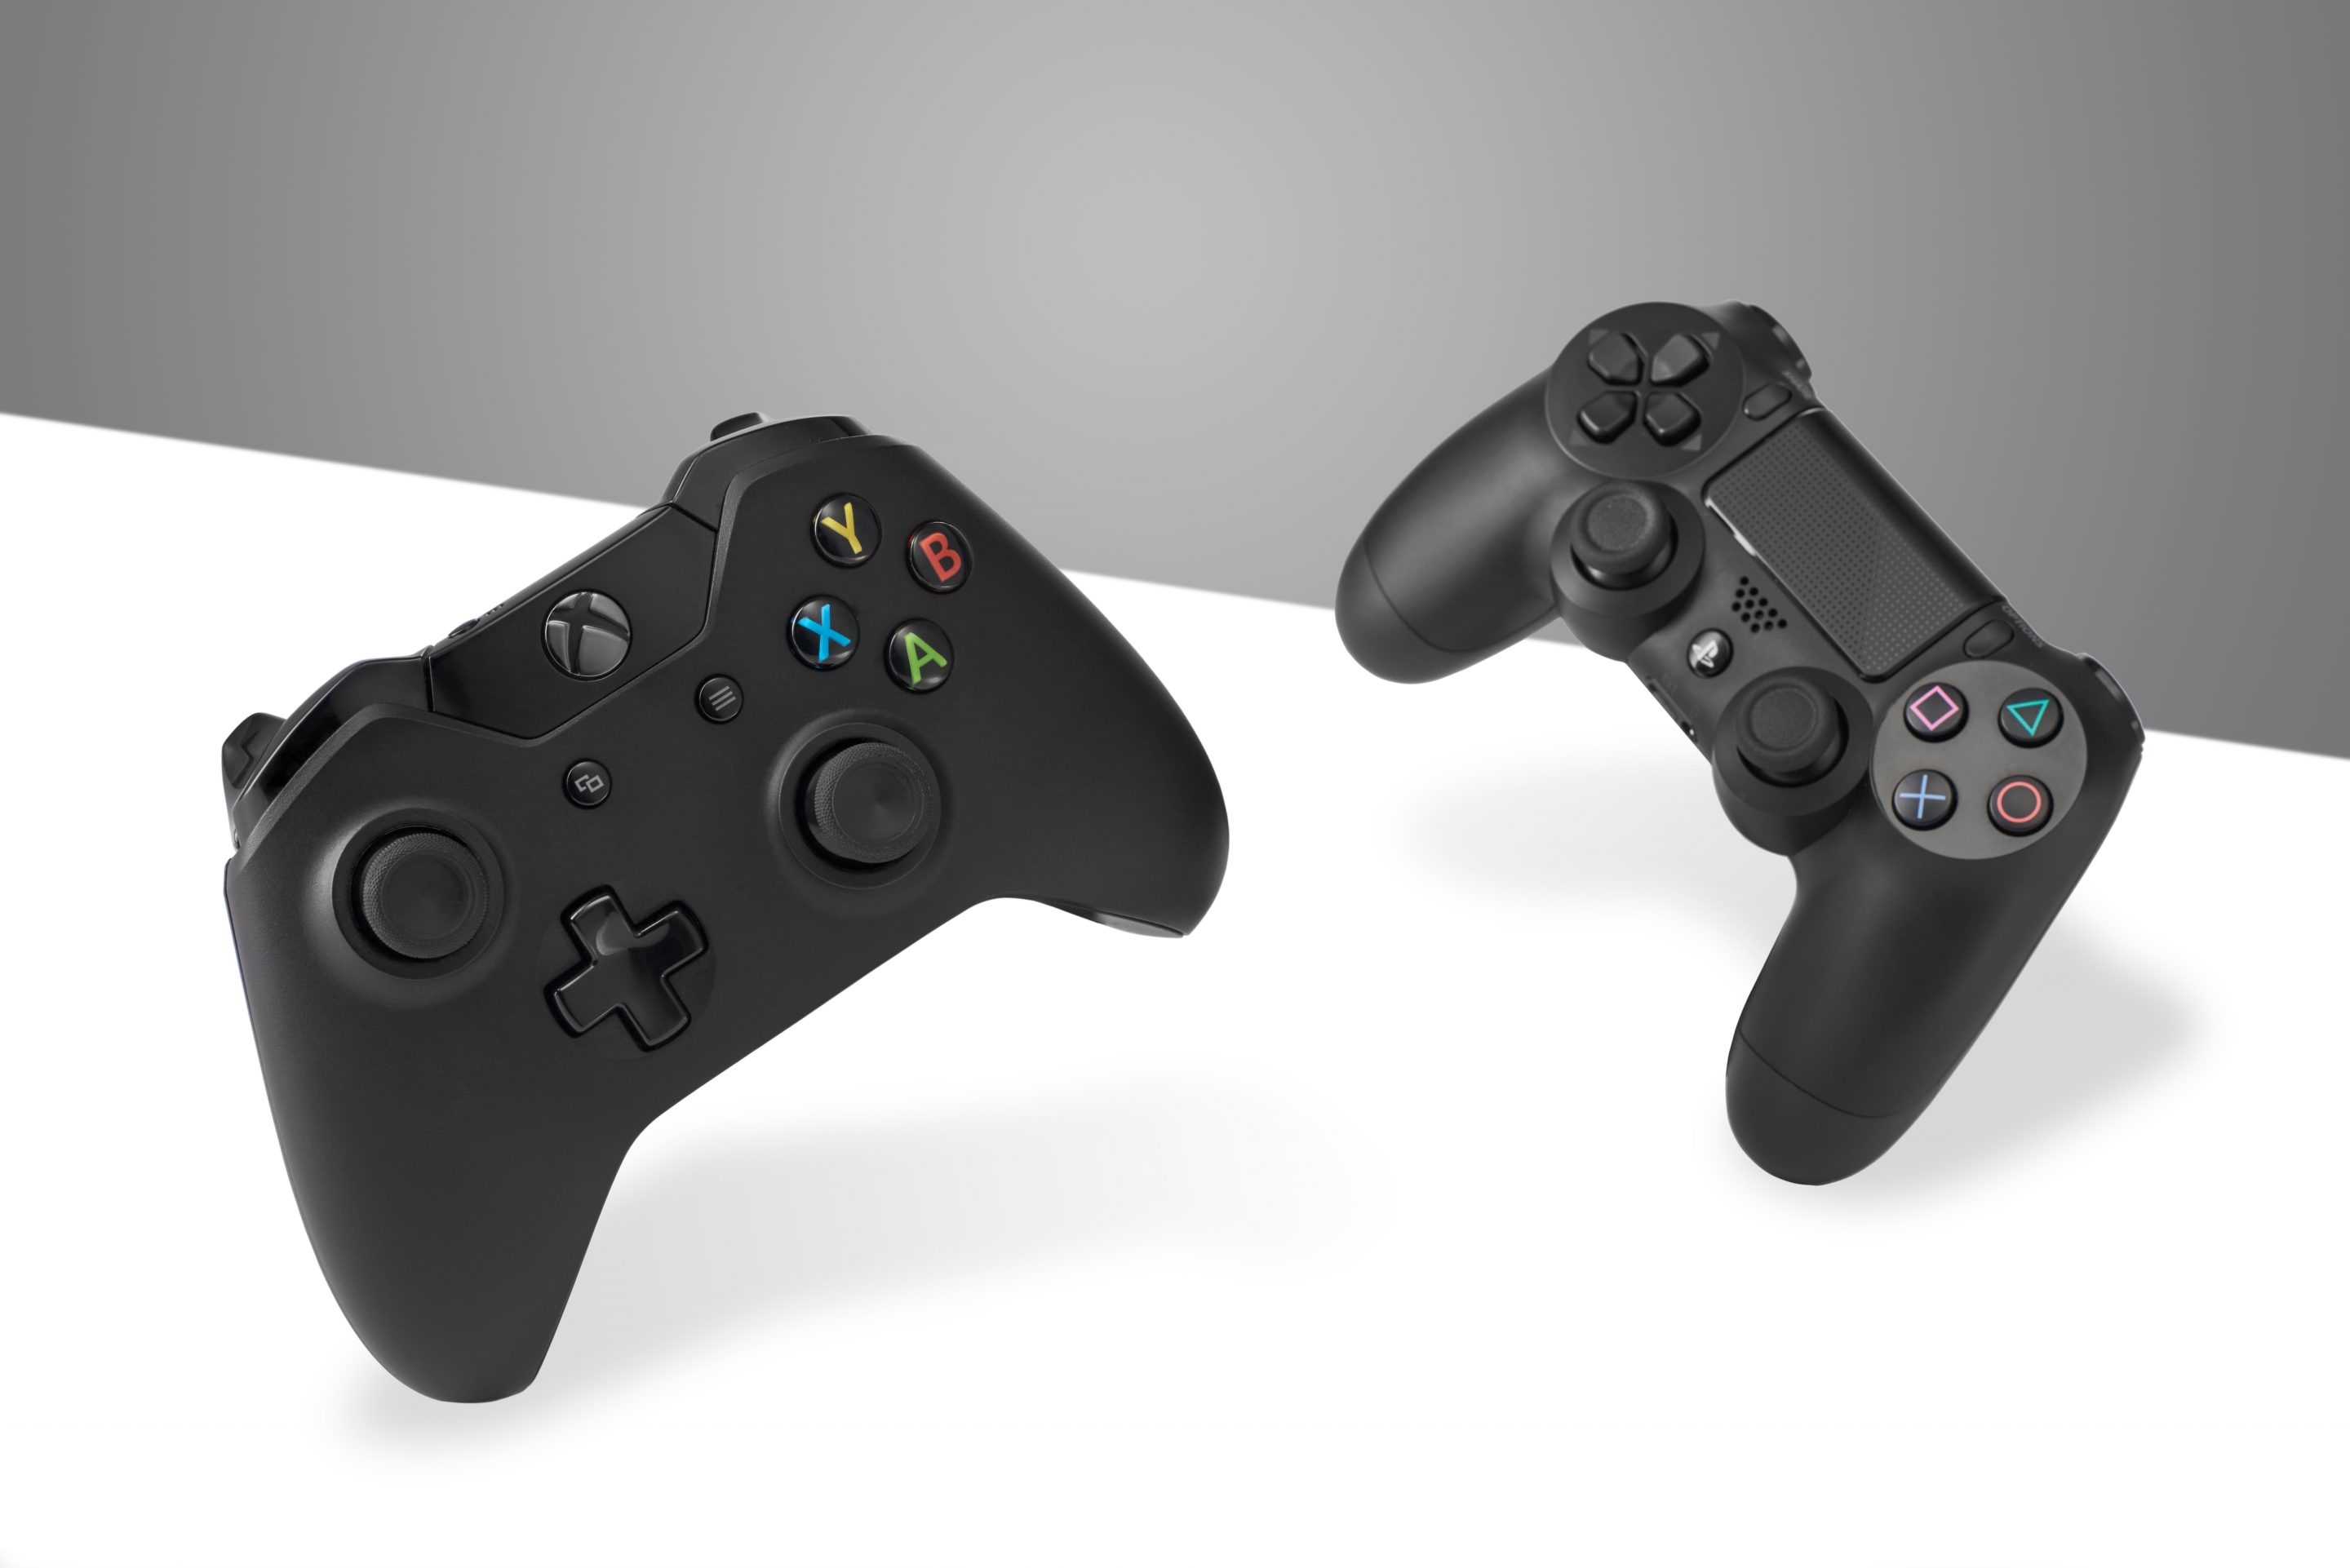 Are Gamers Ready For New Consoles? Video Game CEOs Weigh In